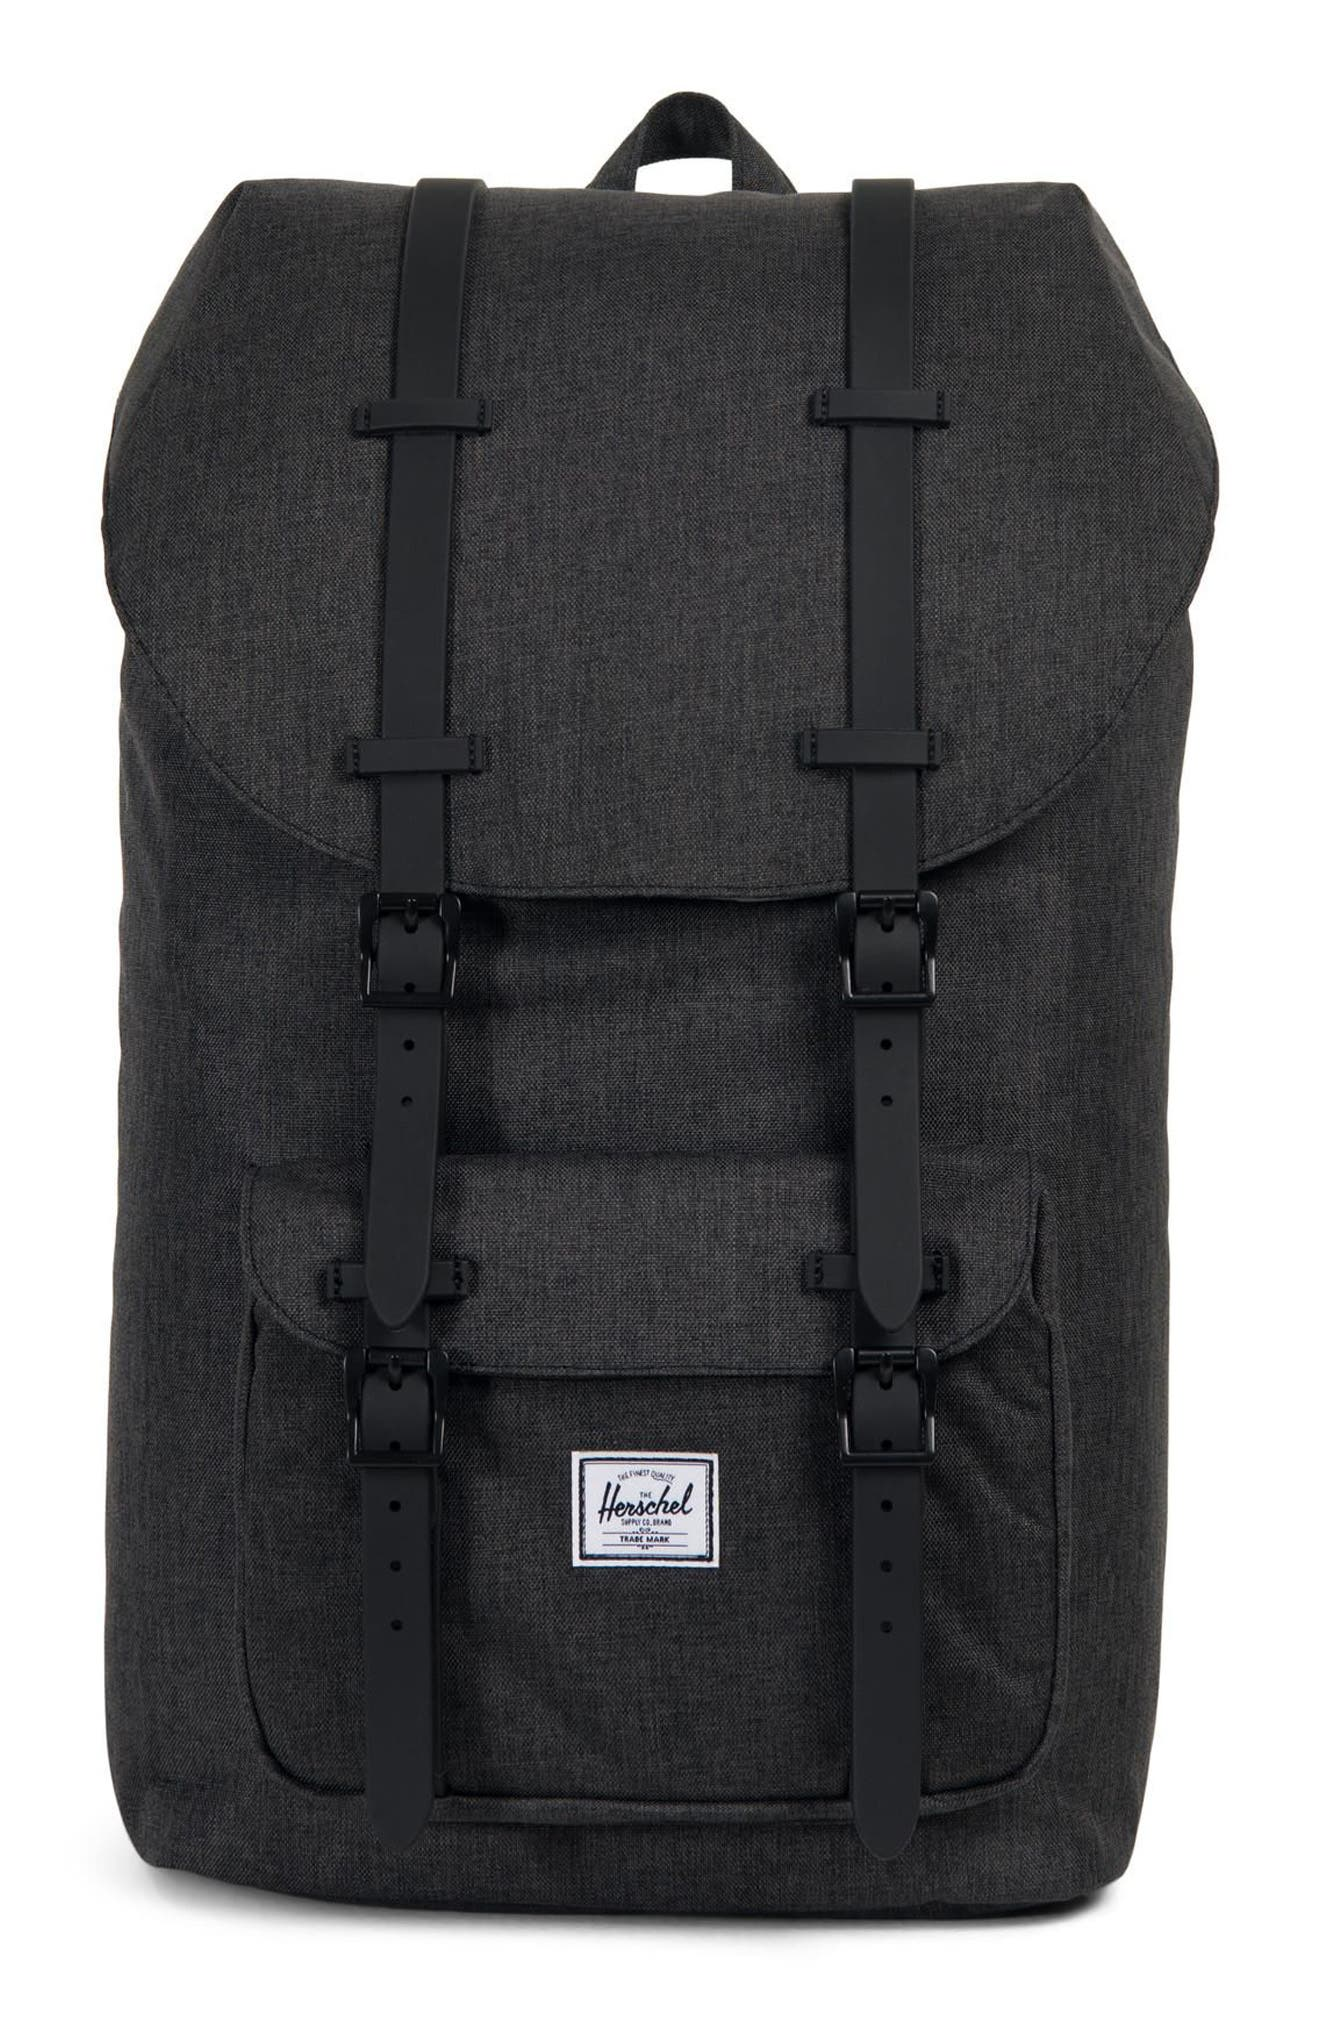 Little America Backpack,                             Main thumbnail 1, color,                             BLACK CROSSHATCH/ BLACK RUBBER